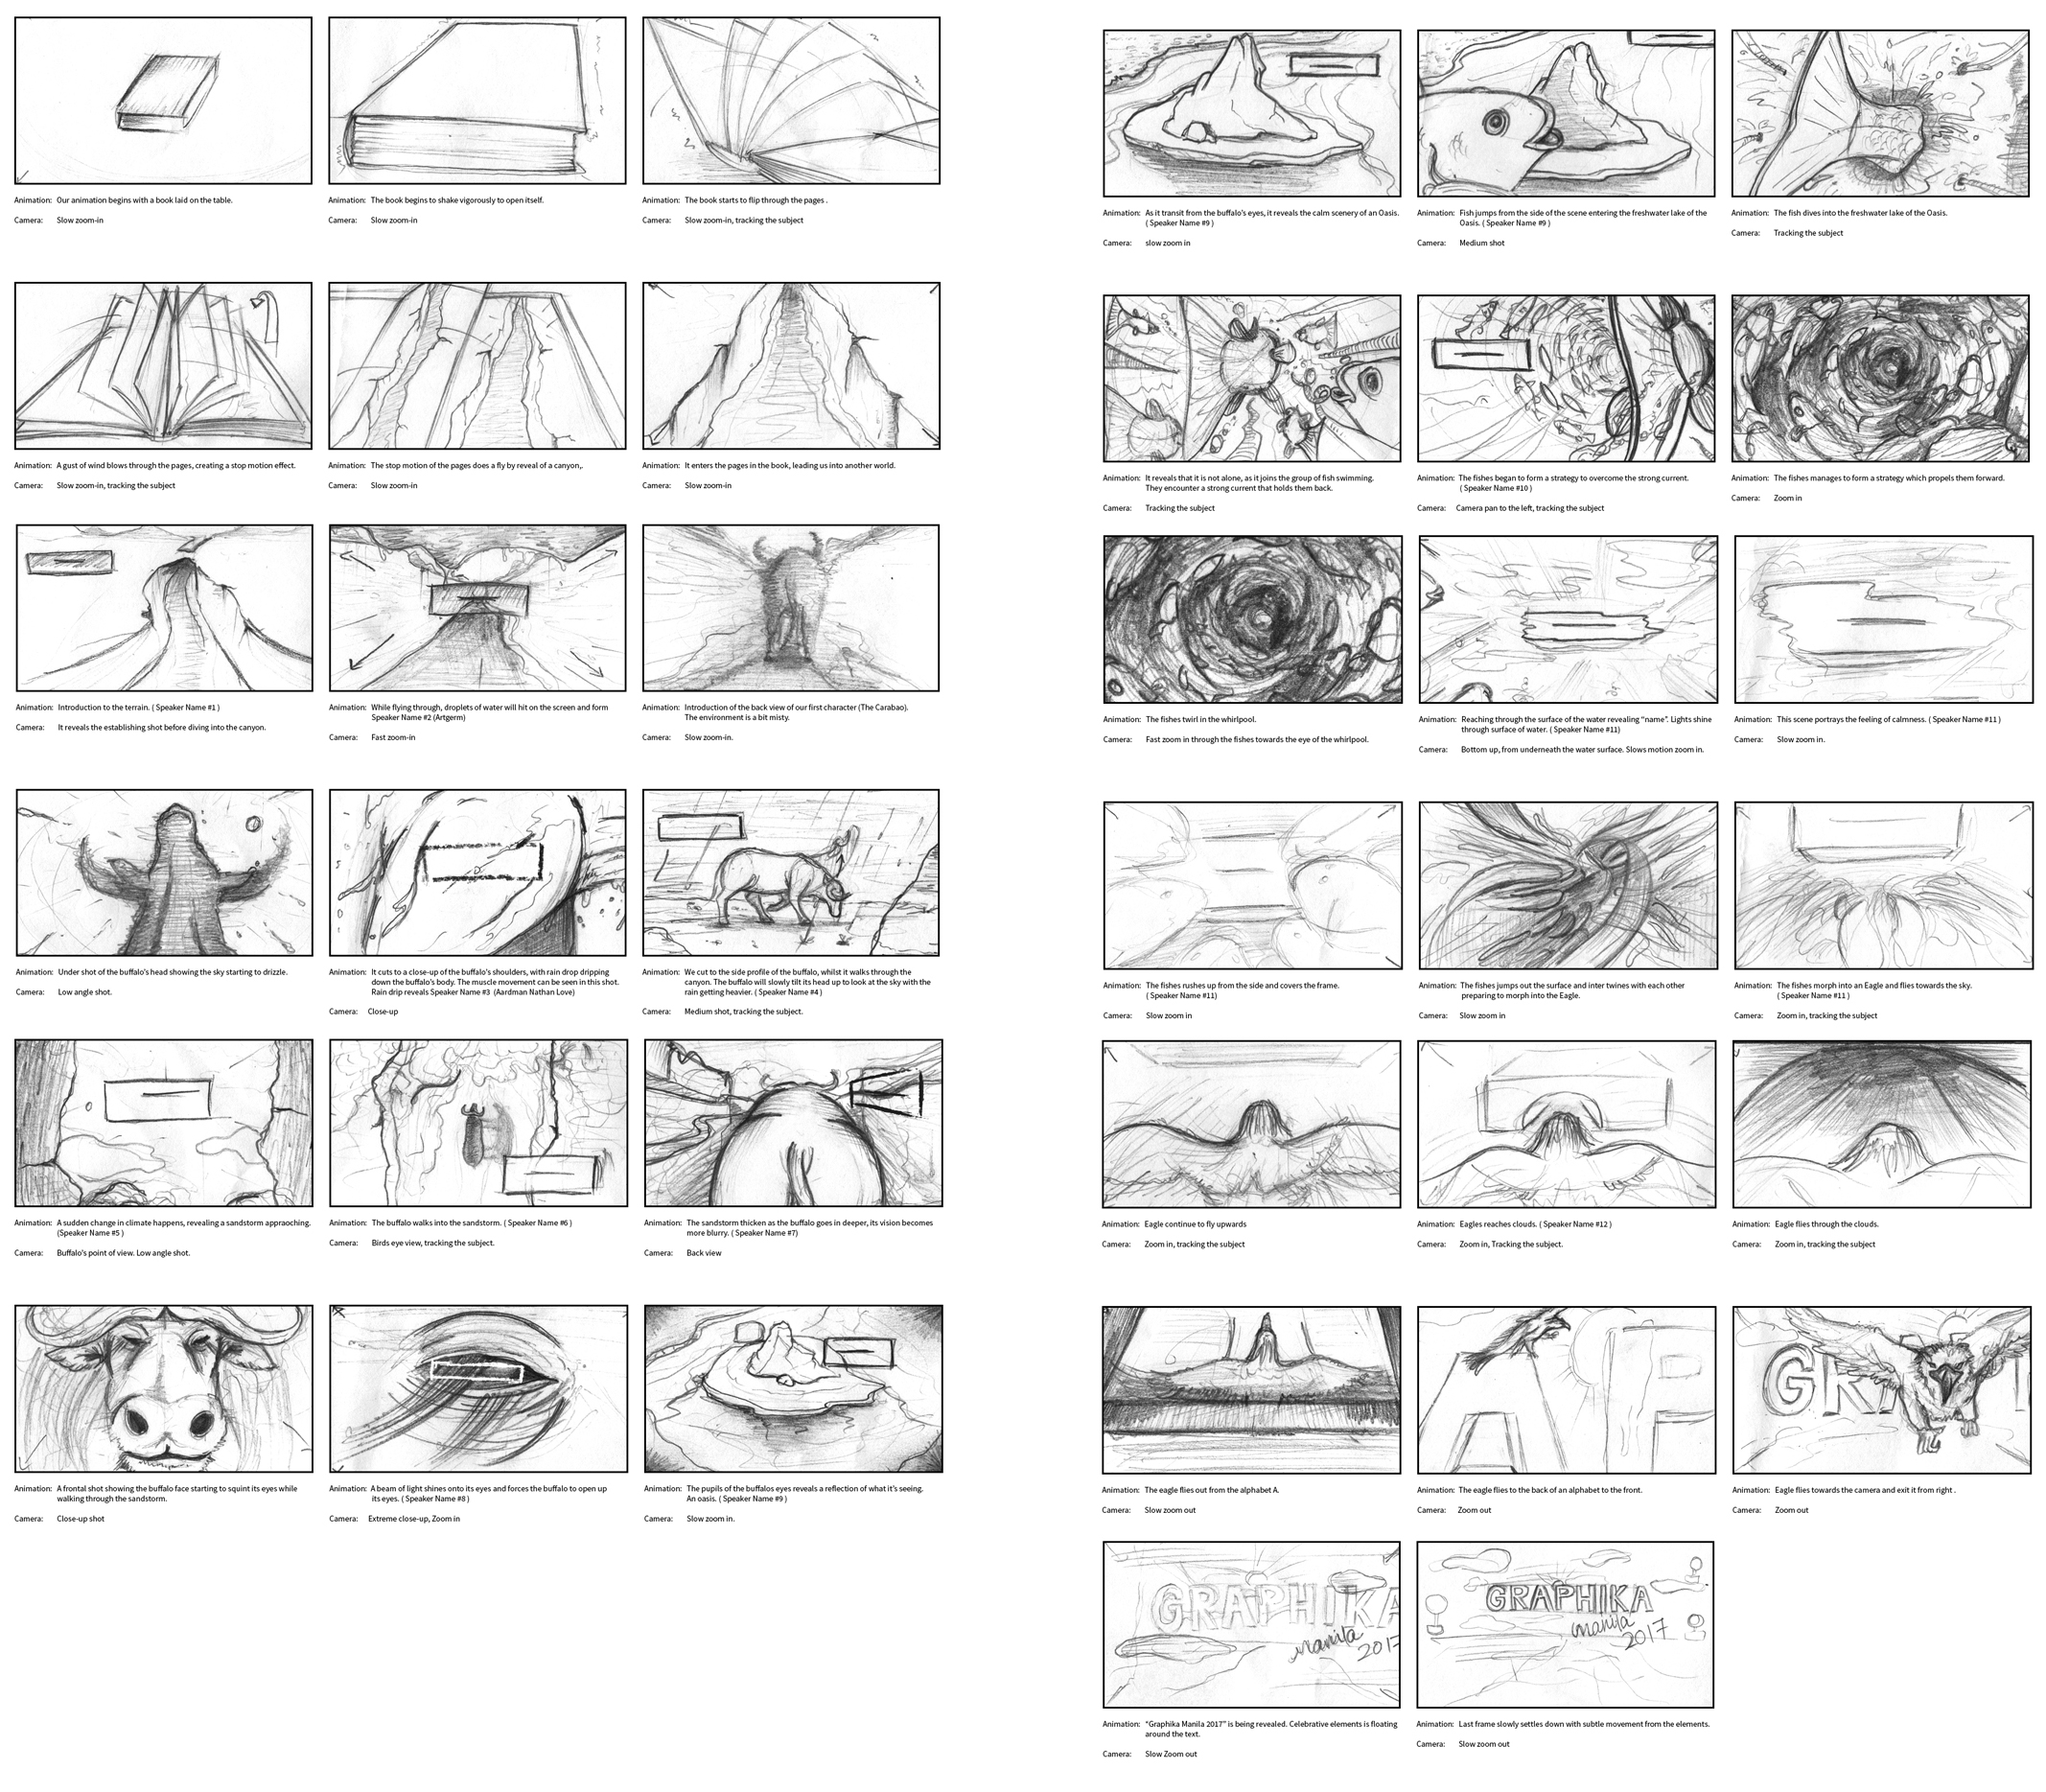 STORYBOARD DEVELOPMENT